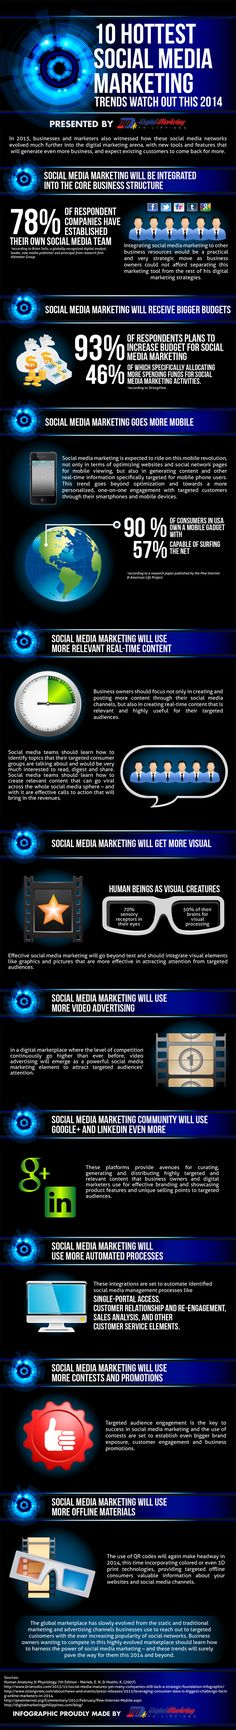 10 Hottest Social Media Marketing Trends Watch Out This 2014 (Infographic)